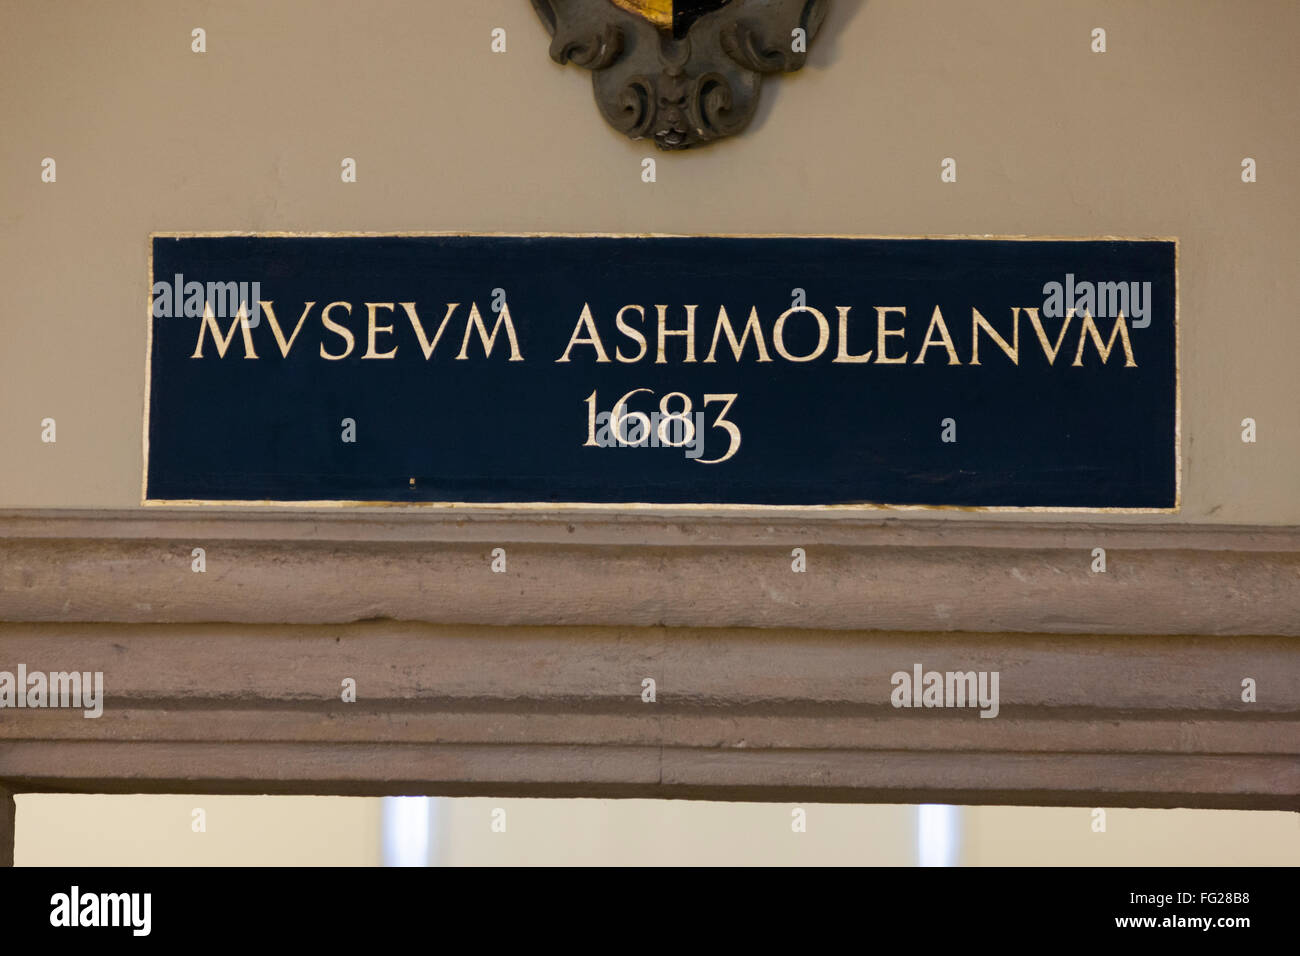 Reference to the 'Old Ashmolean Museum' 1693, inside the building of Museum of the History of Science. Oxford. - Stock Image